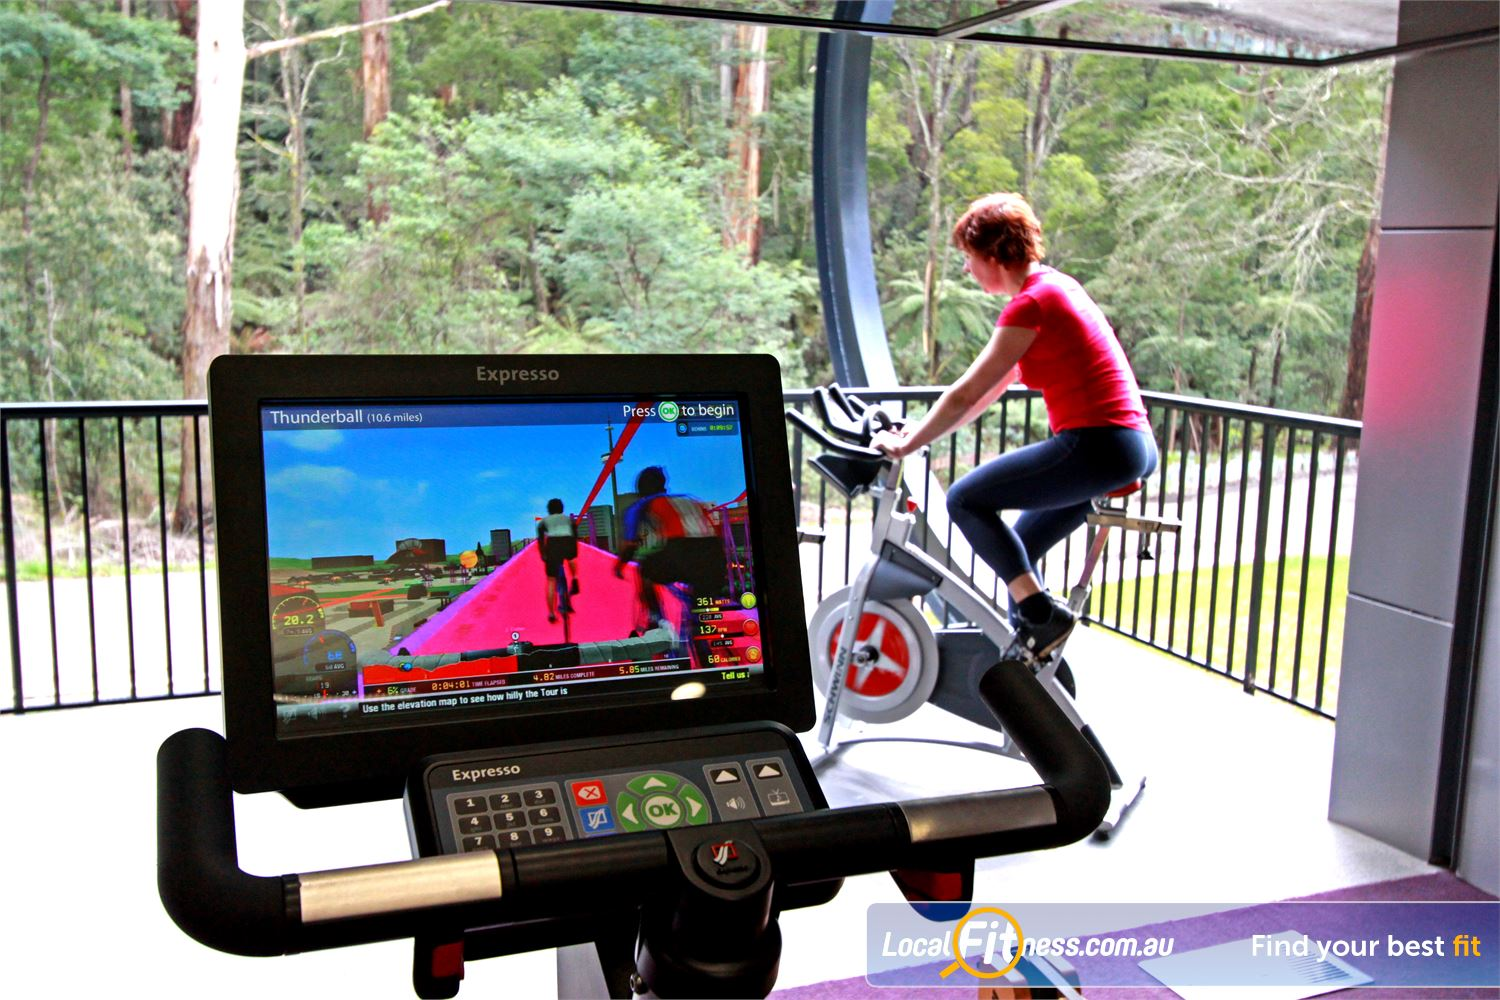 Monbulk Aquatic Centre Monbulk State of the art equipment with the Expresso virtual cycle bikes.